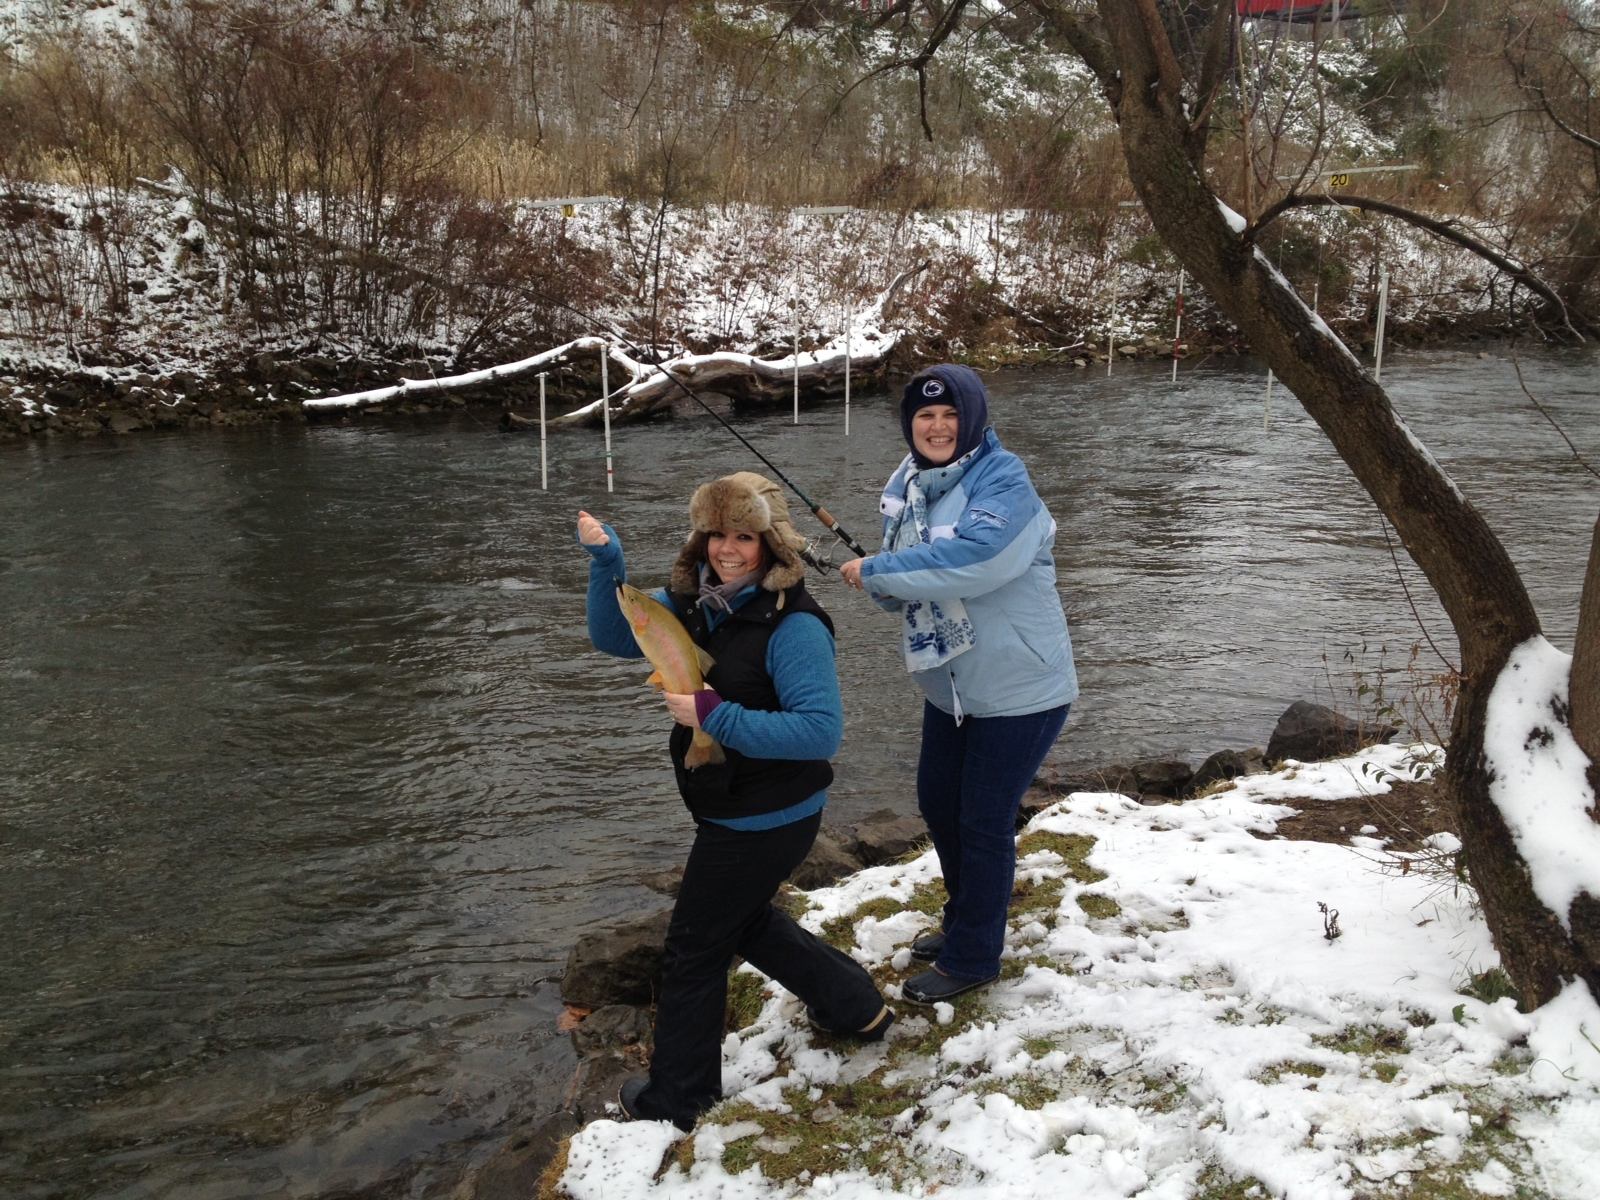 Northern pennsylvania fishing report december 18 2014 for Fishing in pennsylvania